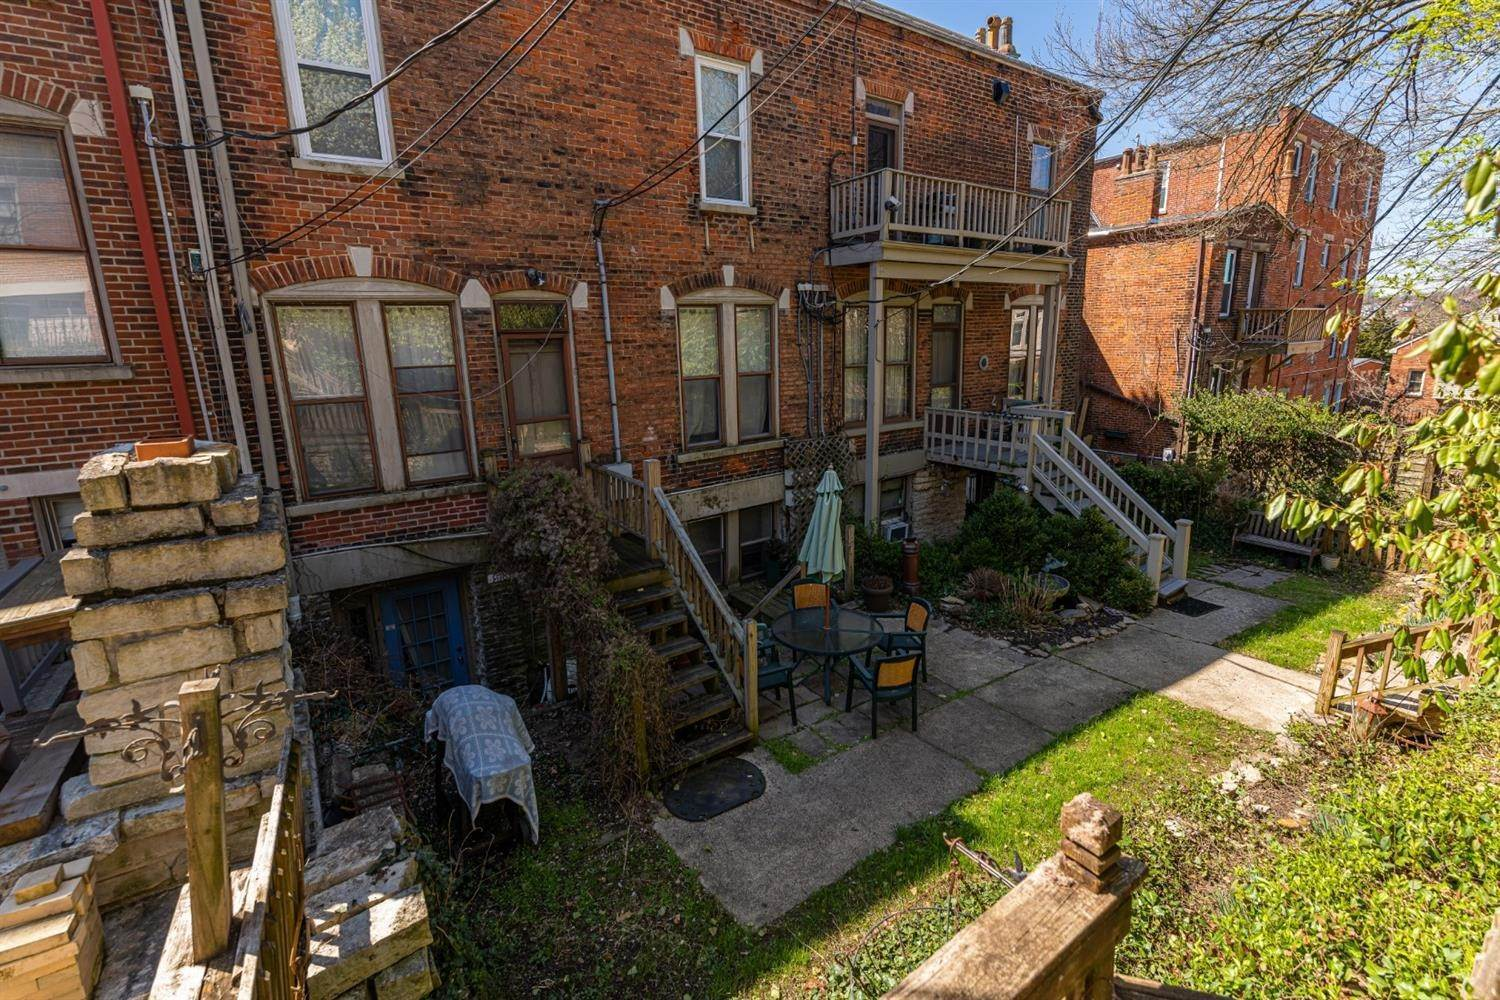 12. Condominiums for Sale at 928 Morris Street Cincinnati, Ohio 45206 United States